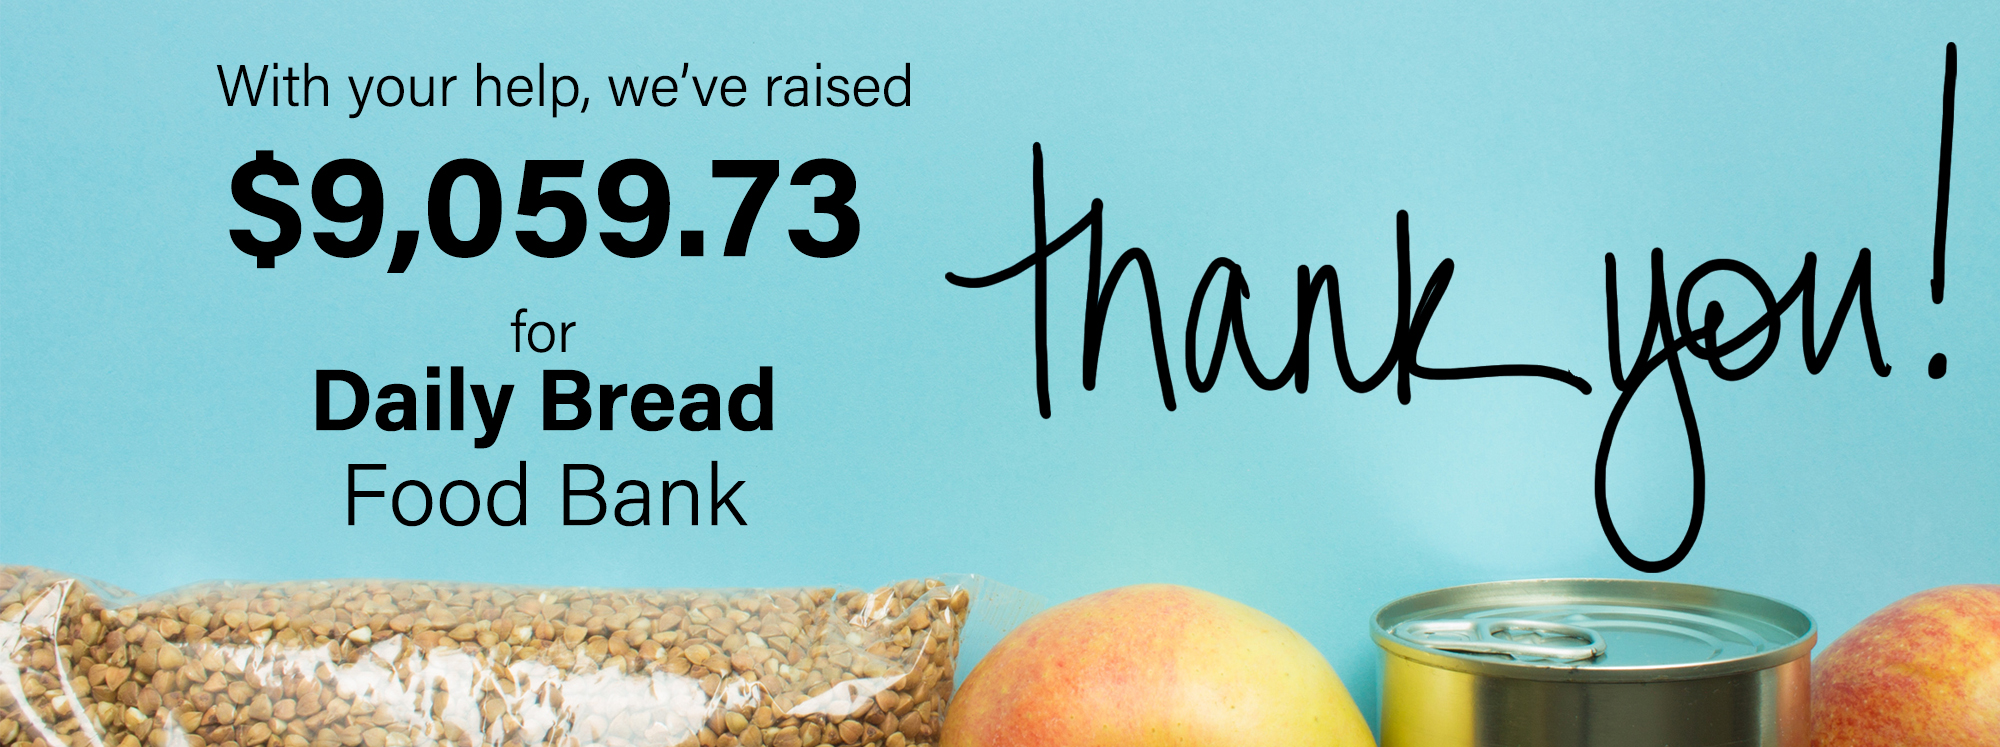 We raised $9000 for the Daily Bread Food Bank